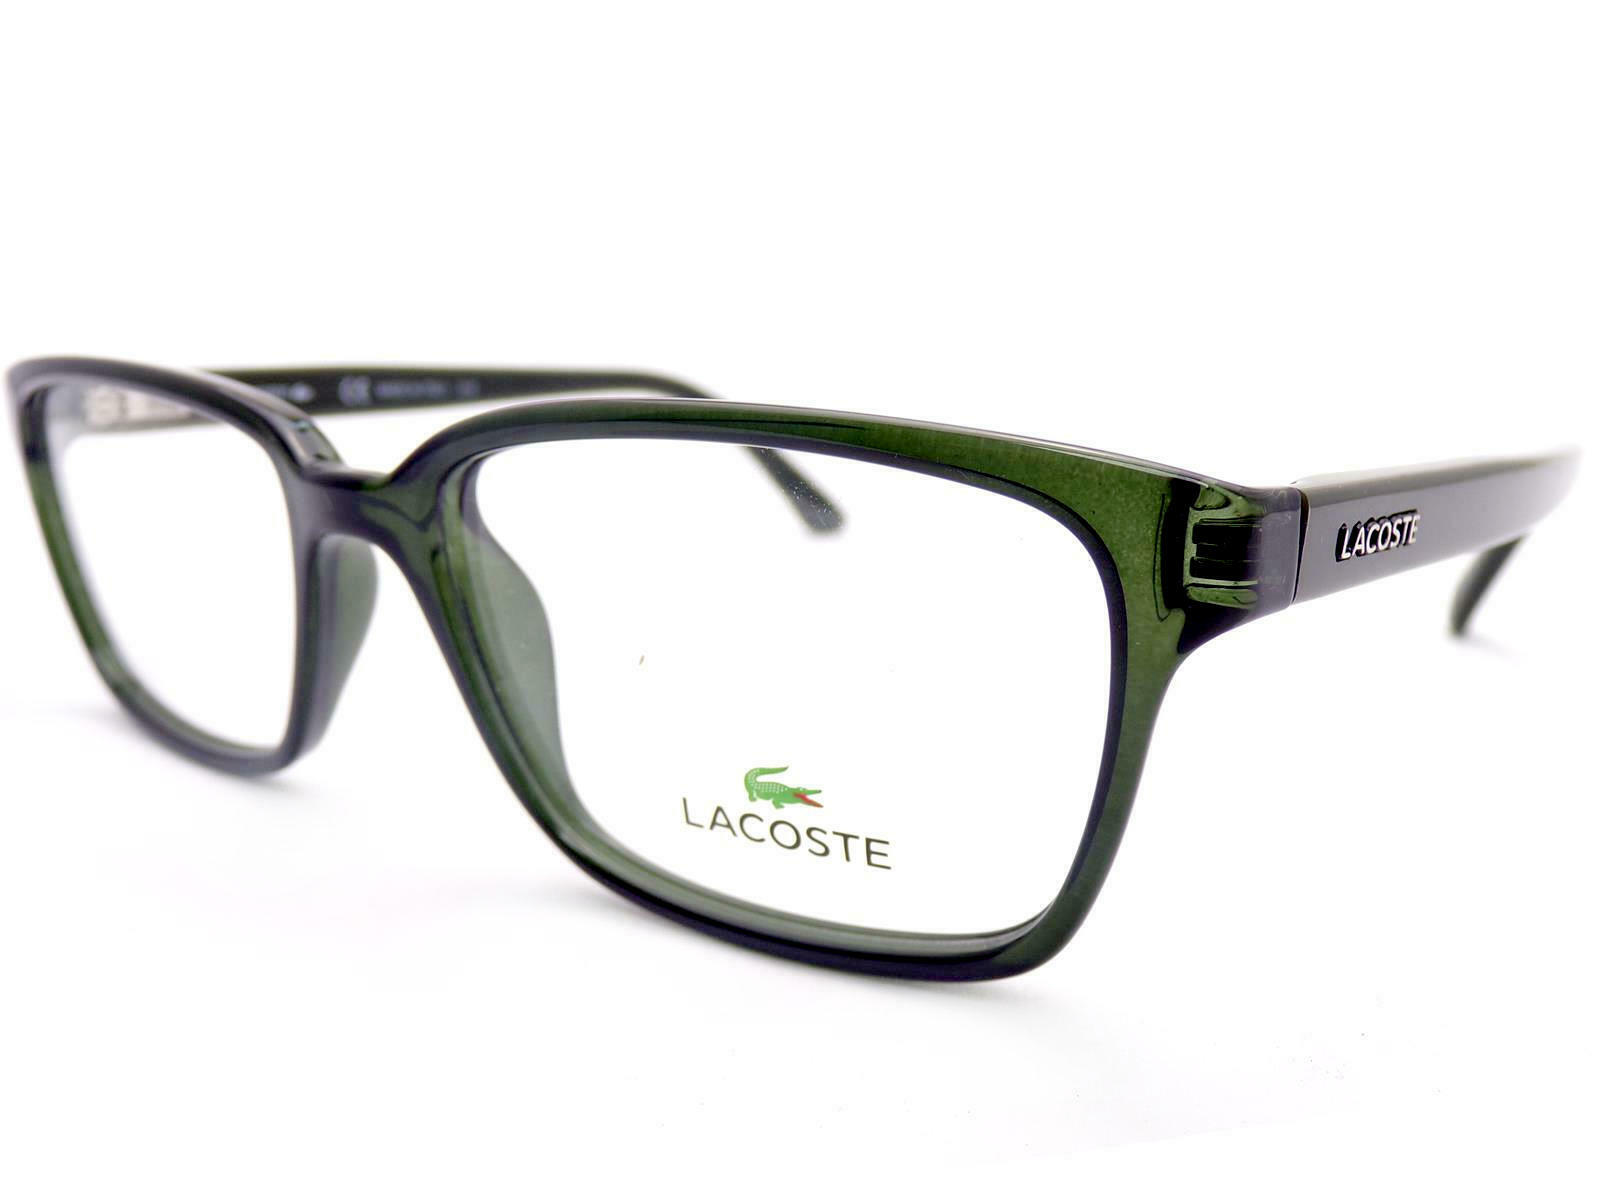 LACOSTE unisex Dark Green 53mm Optical RX Spectacles Glasses